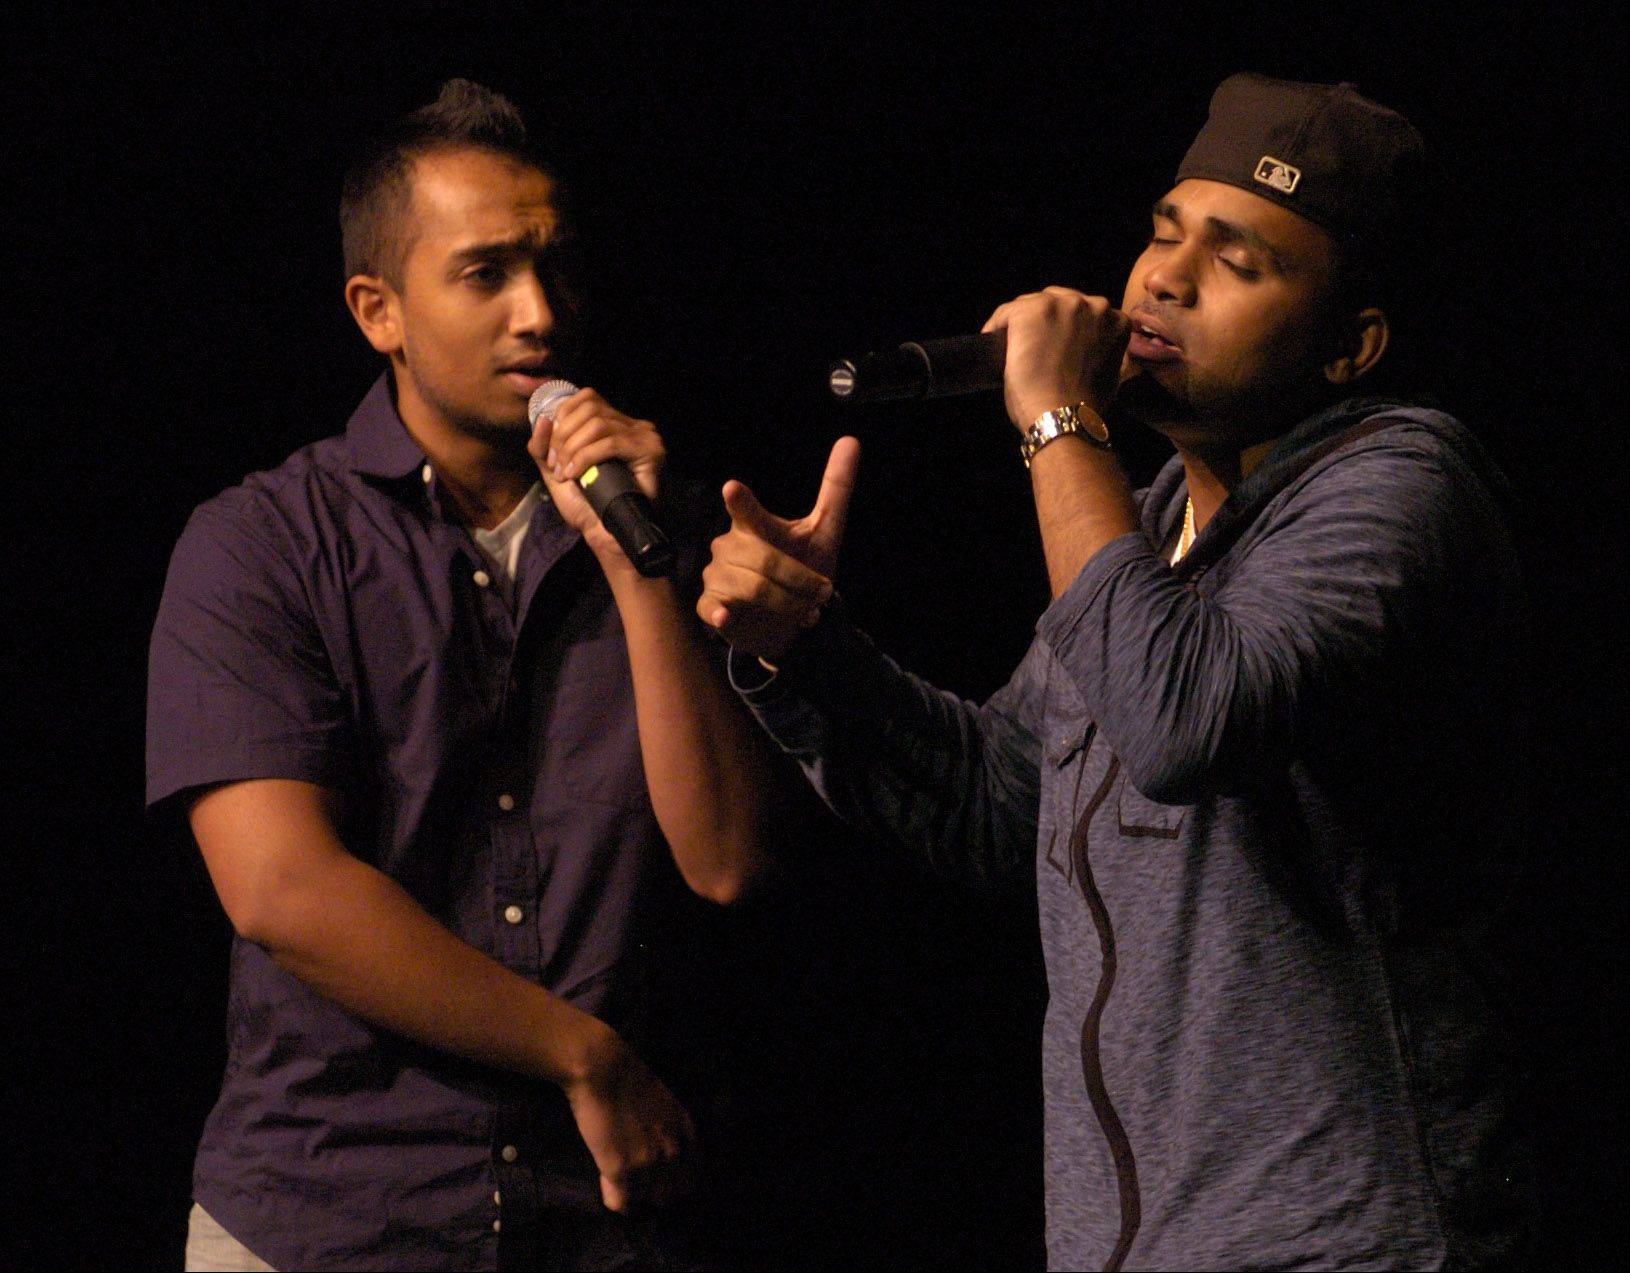 Shawn Kurian of Wheeling, left, and Sanu John of Skokie do two-man a cappella as iLLest Vocals. They're among the top 20 finalists for Suburban Chicago's Got Talent.